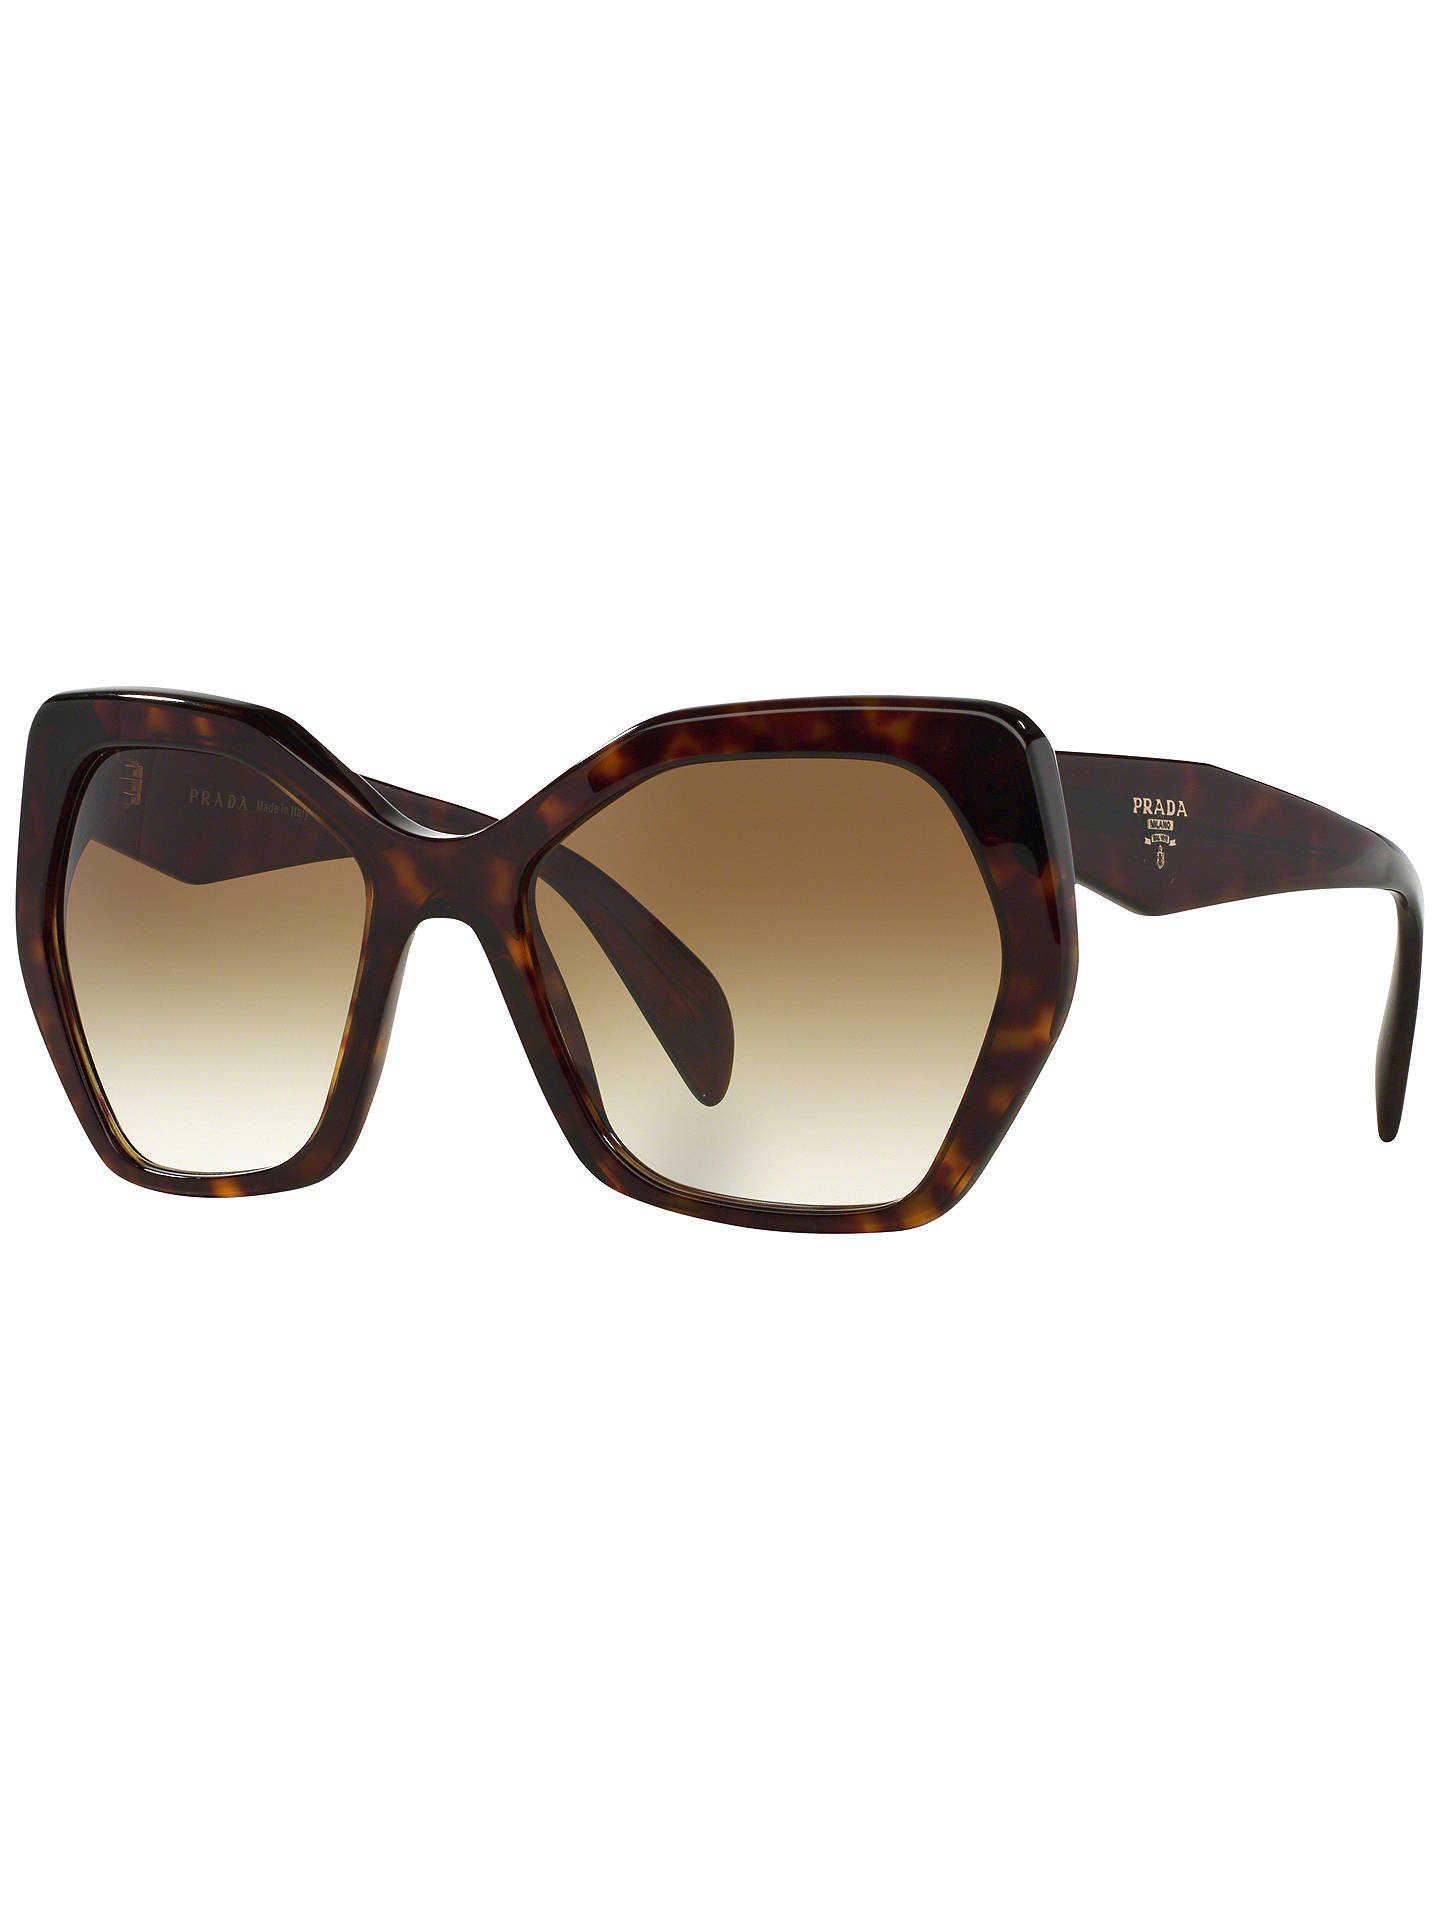 Prada PR16RS Irregular Framed Sunglasses at John Lewis & Partners